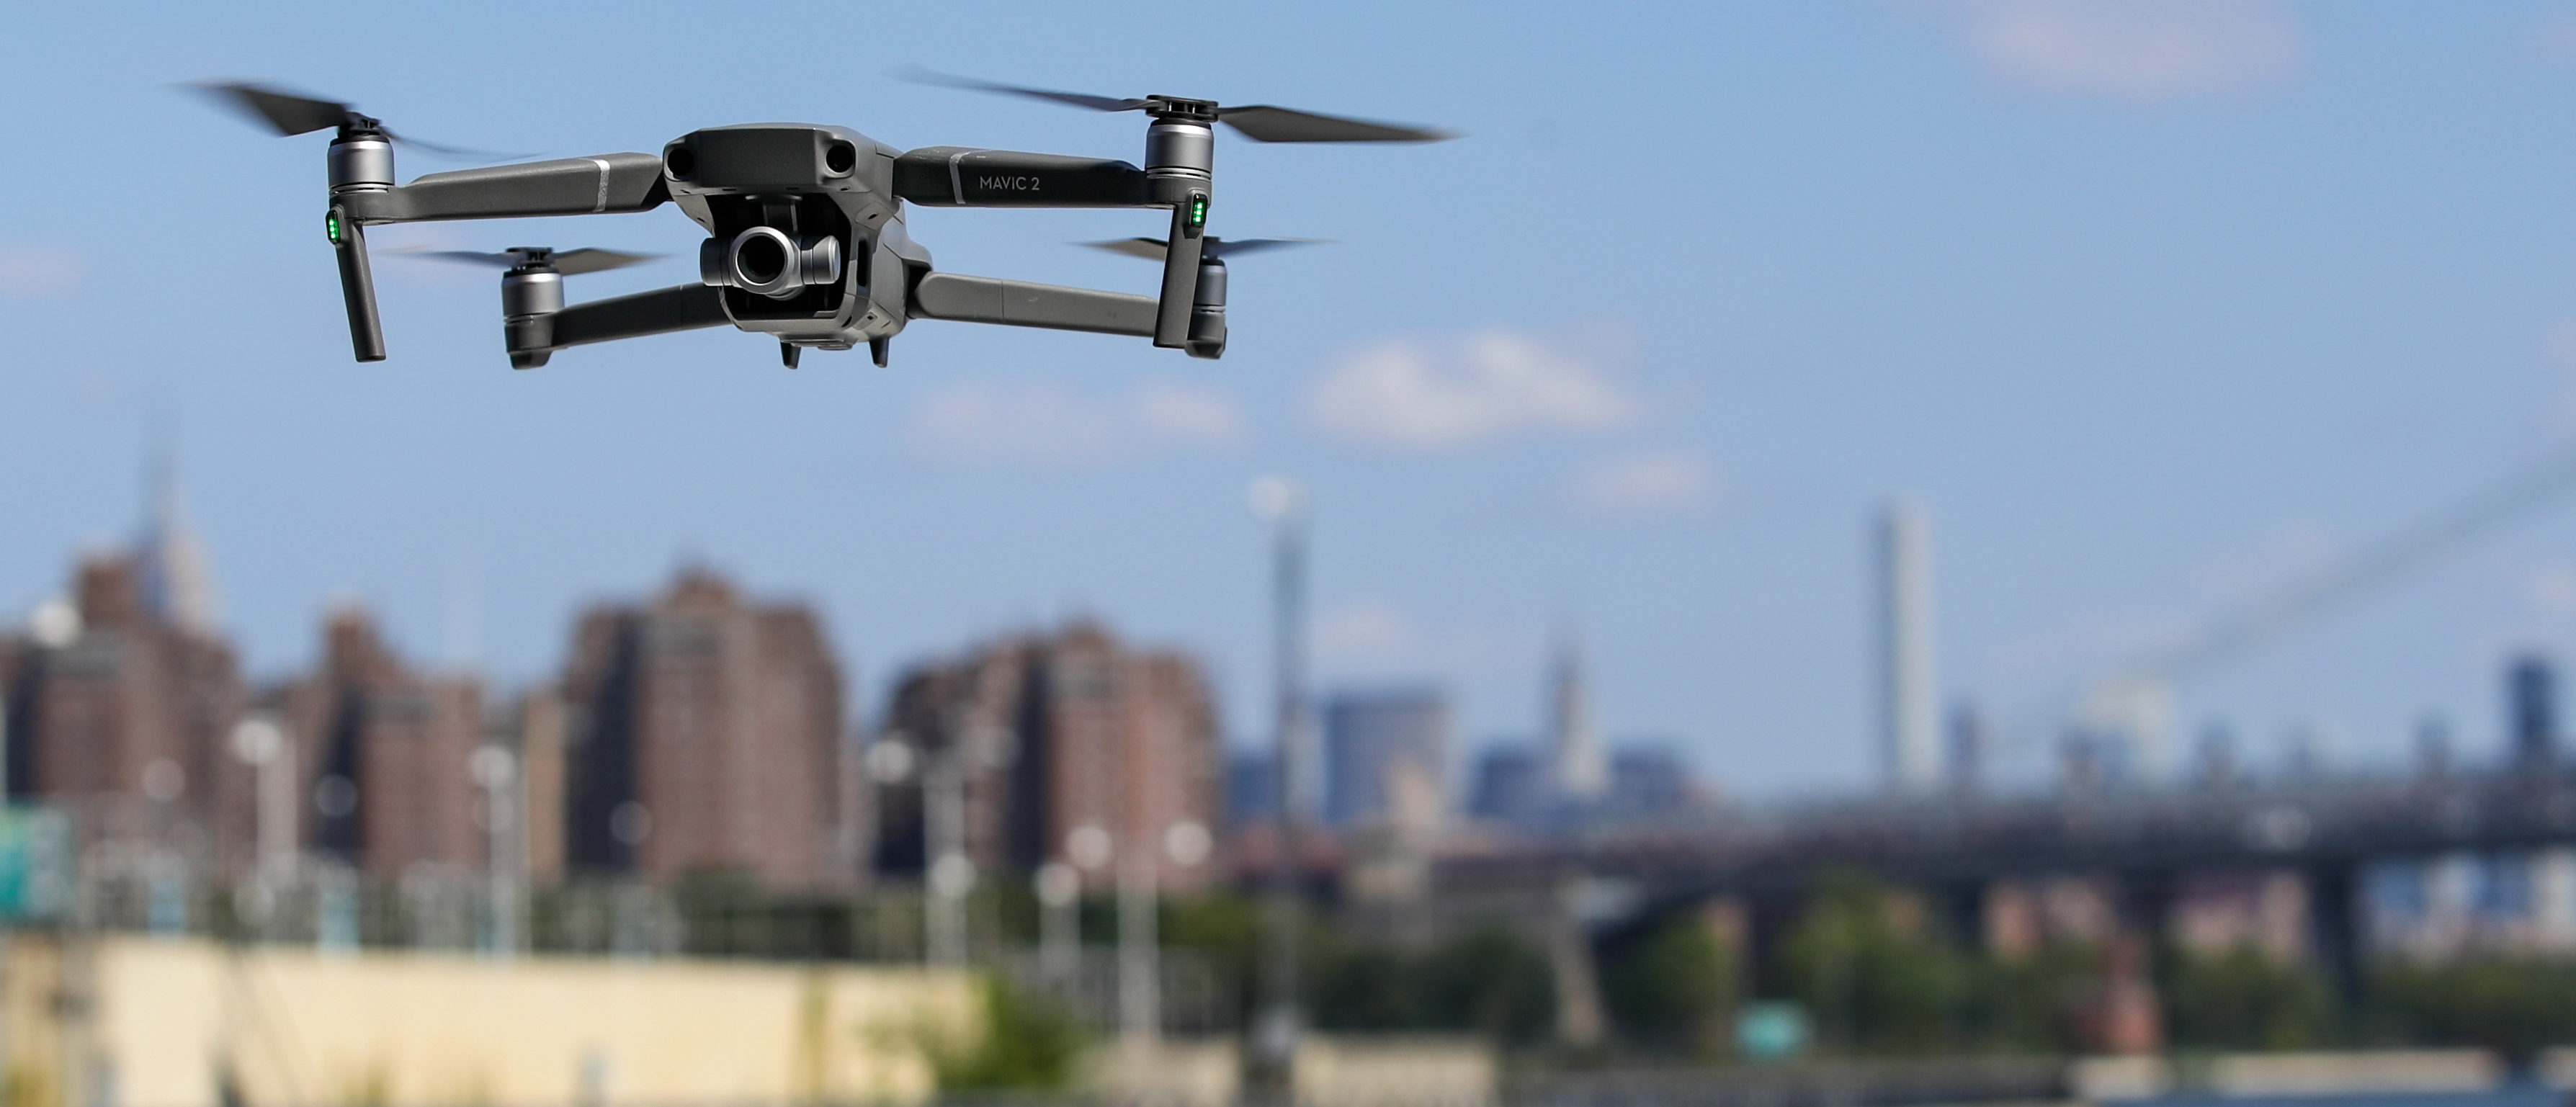 A new DJI Mavic Zoom drone flies during a product launch event at the Brooklyn Navy Yard, August 23, 2018 in New York City. (Photo by Drew Angerer/Getty Images)